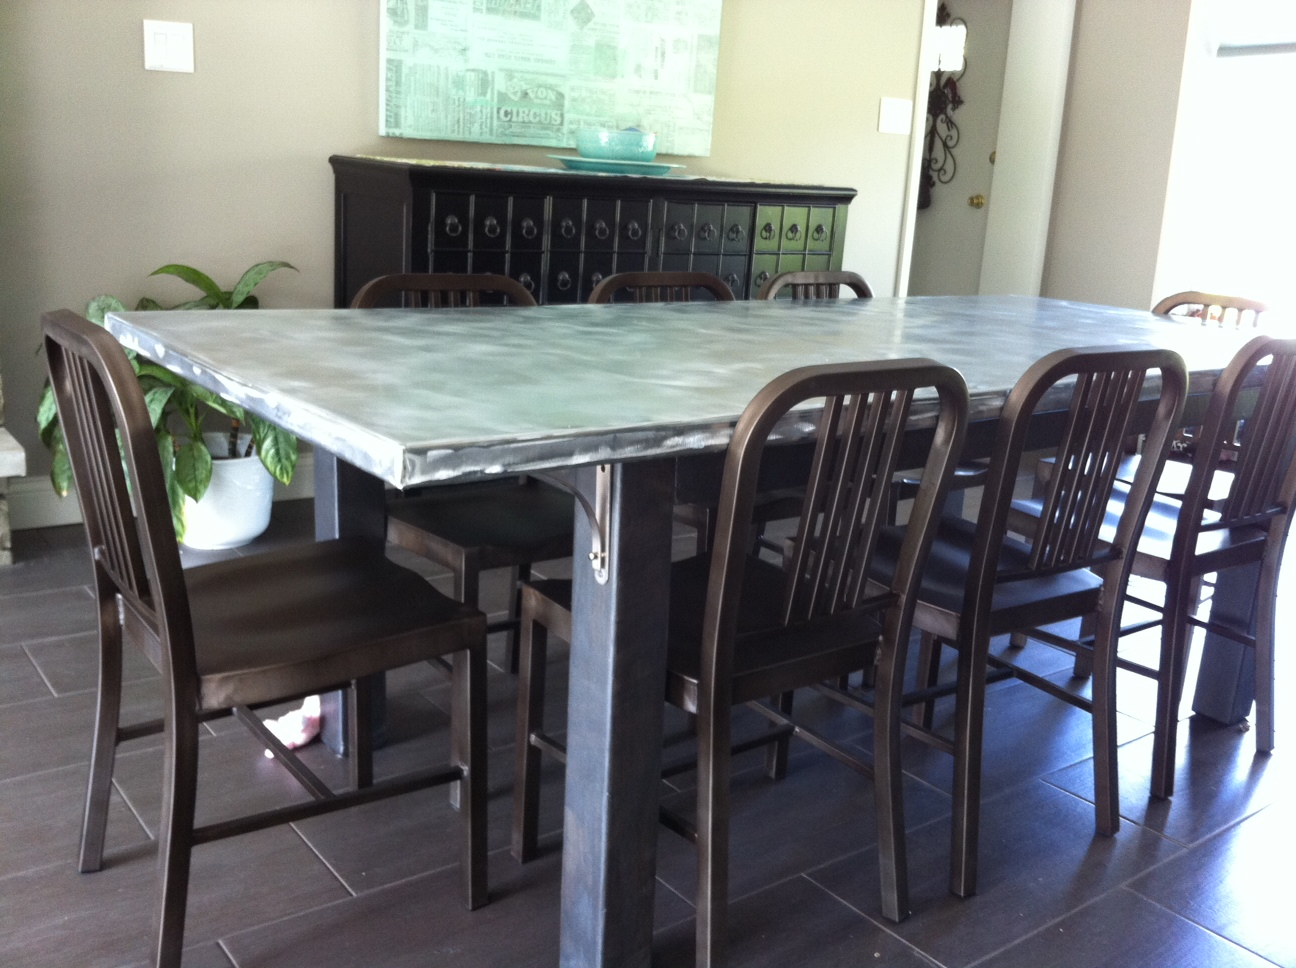 diy-dining-room-zinc-table-16388627425-o.jpg